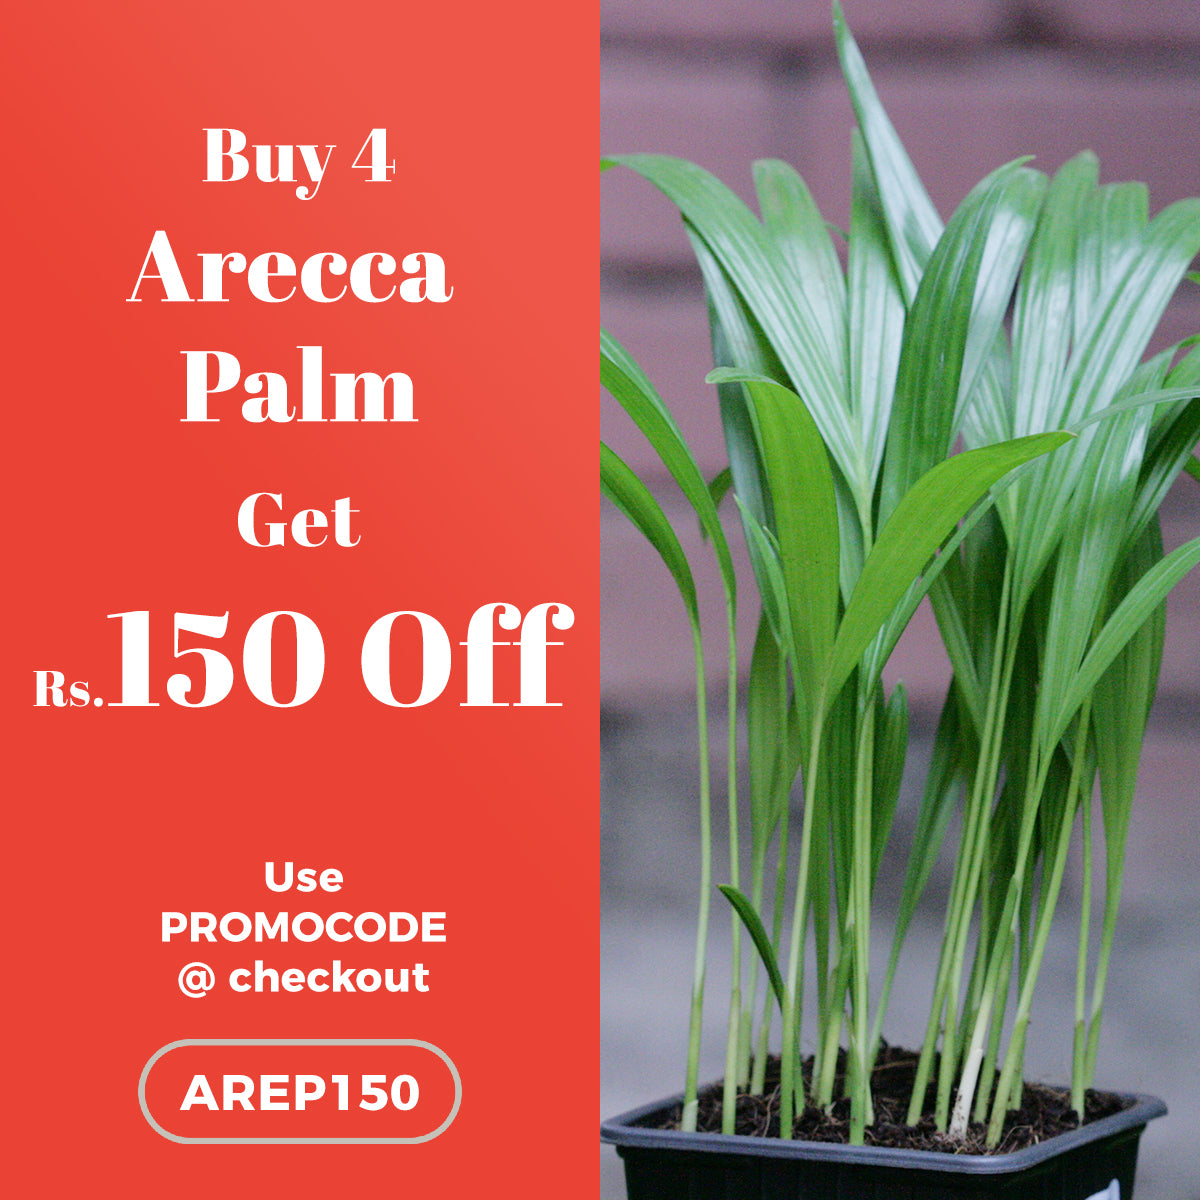 Buy 4 Arecca Palm and get Rs. 150 OFF